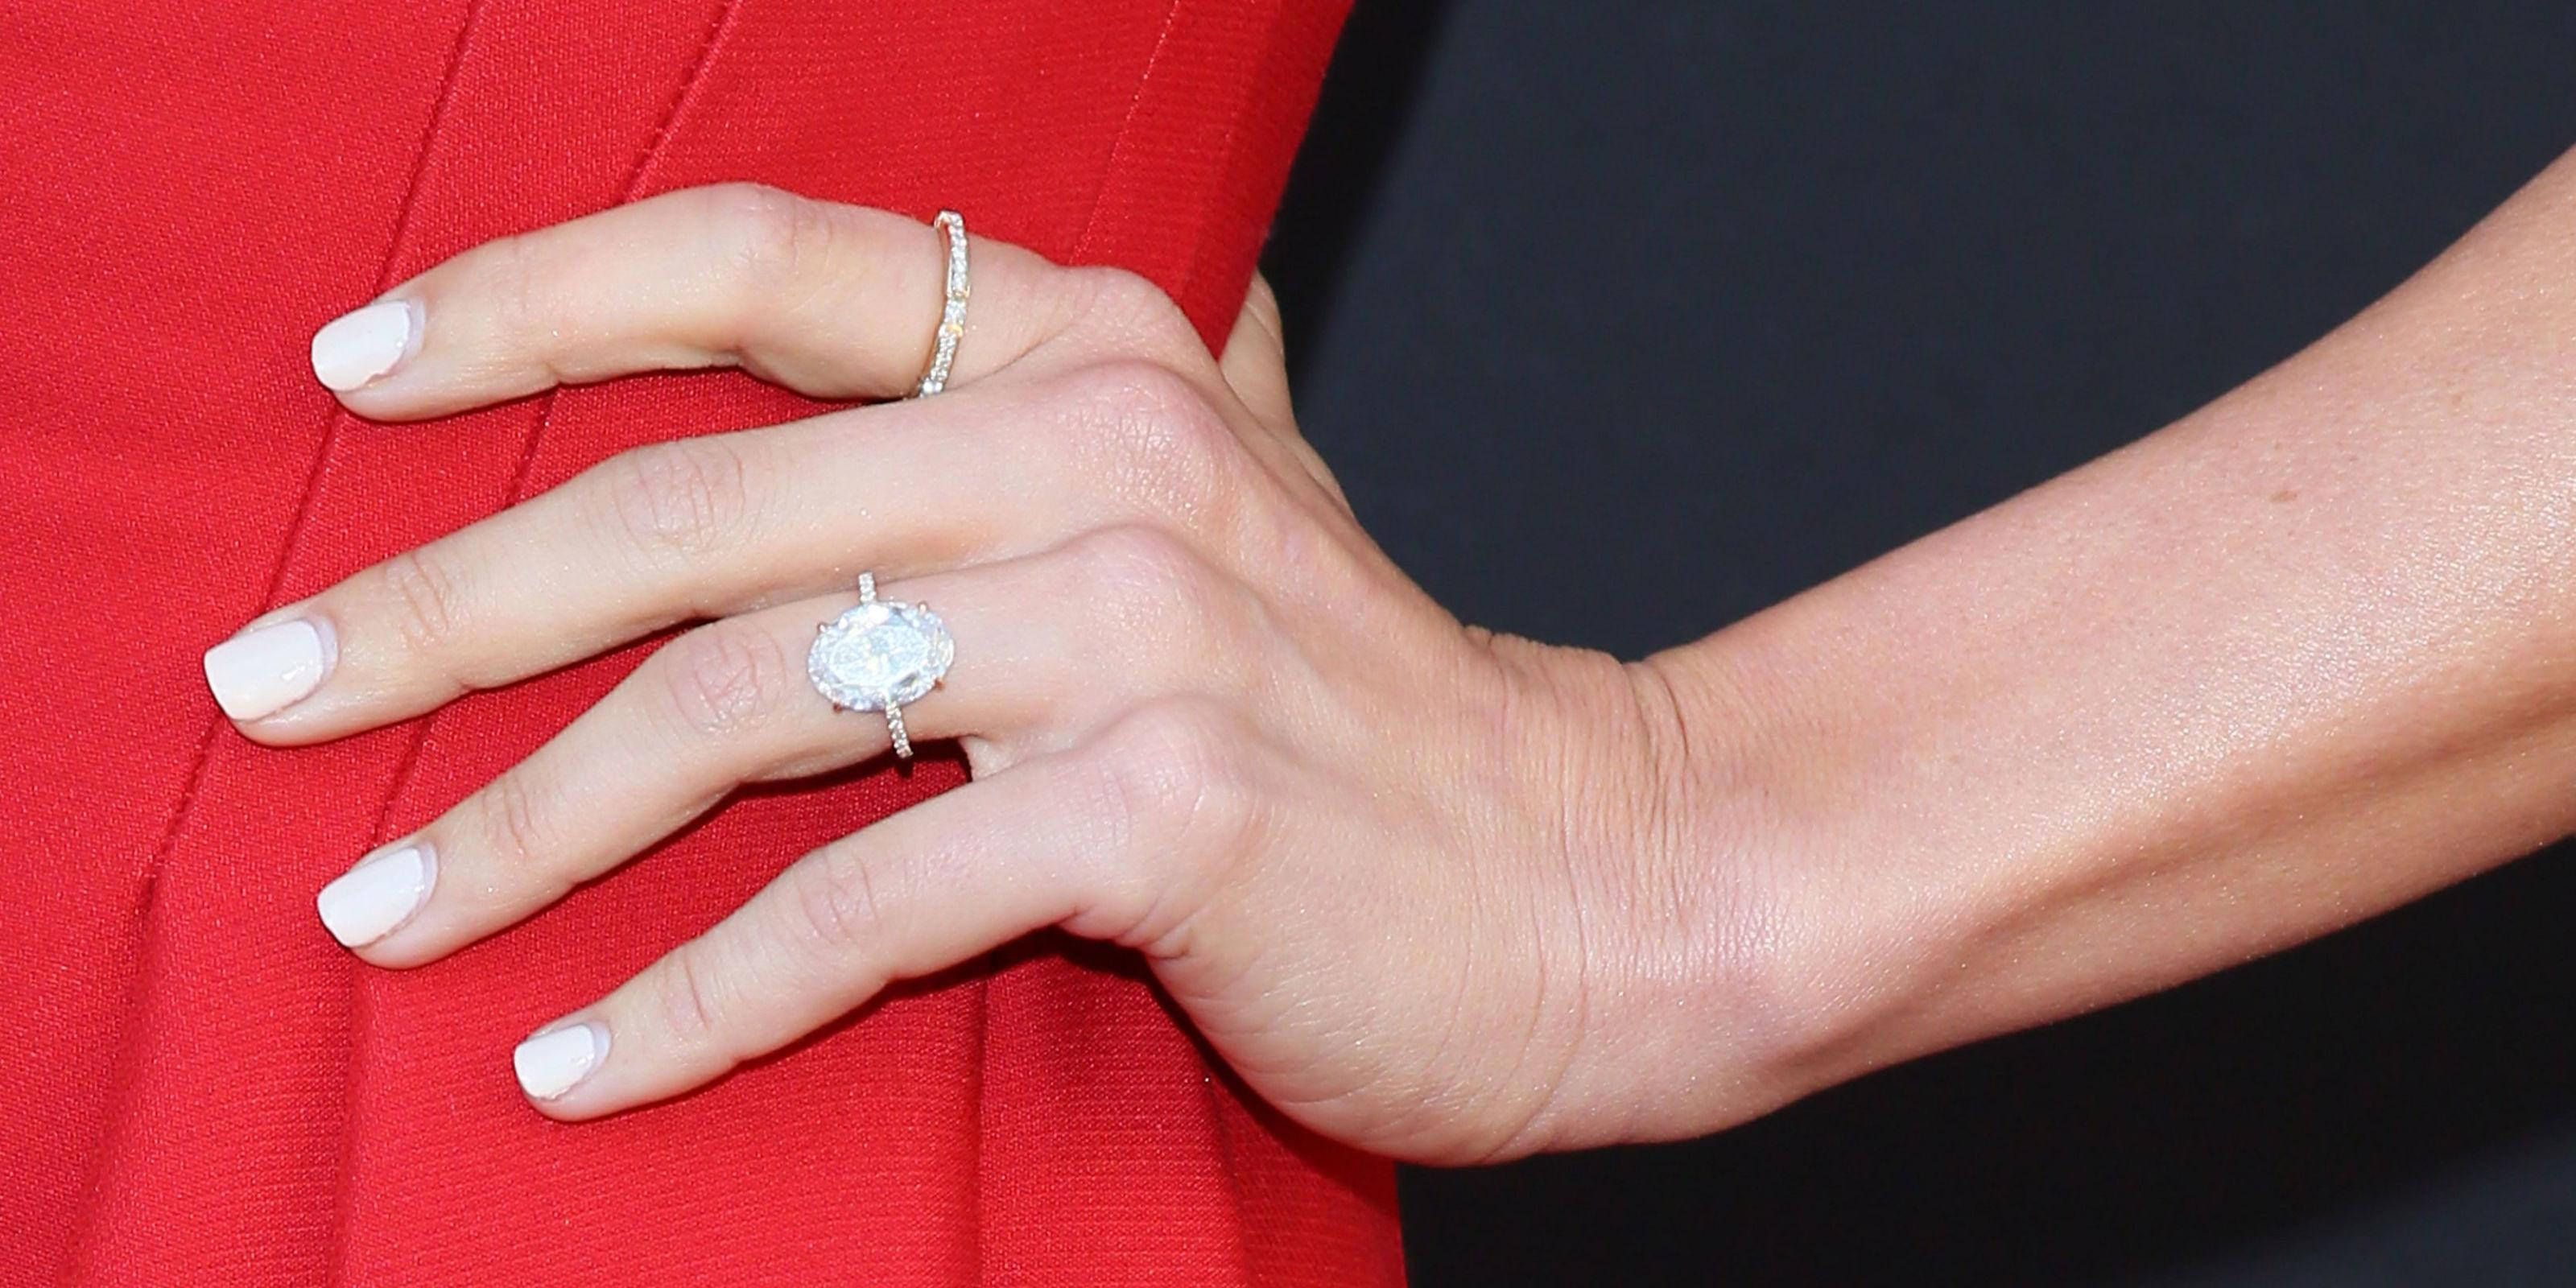 Why You Should Always Wear Your Engagement Ring to Job Interviews